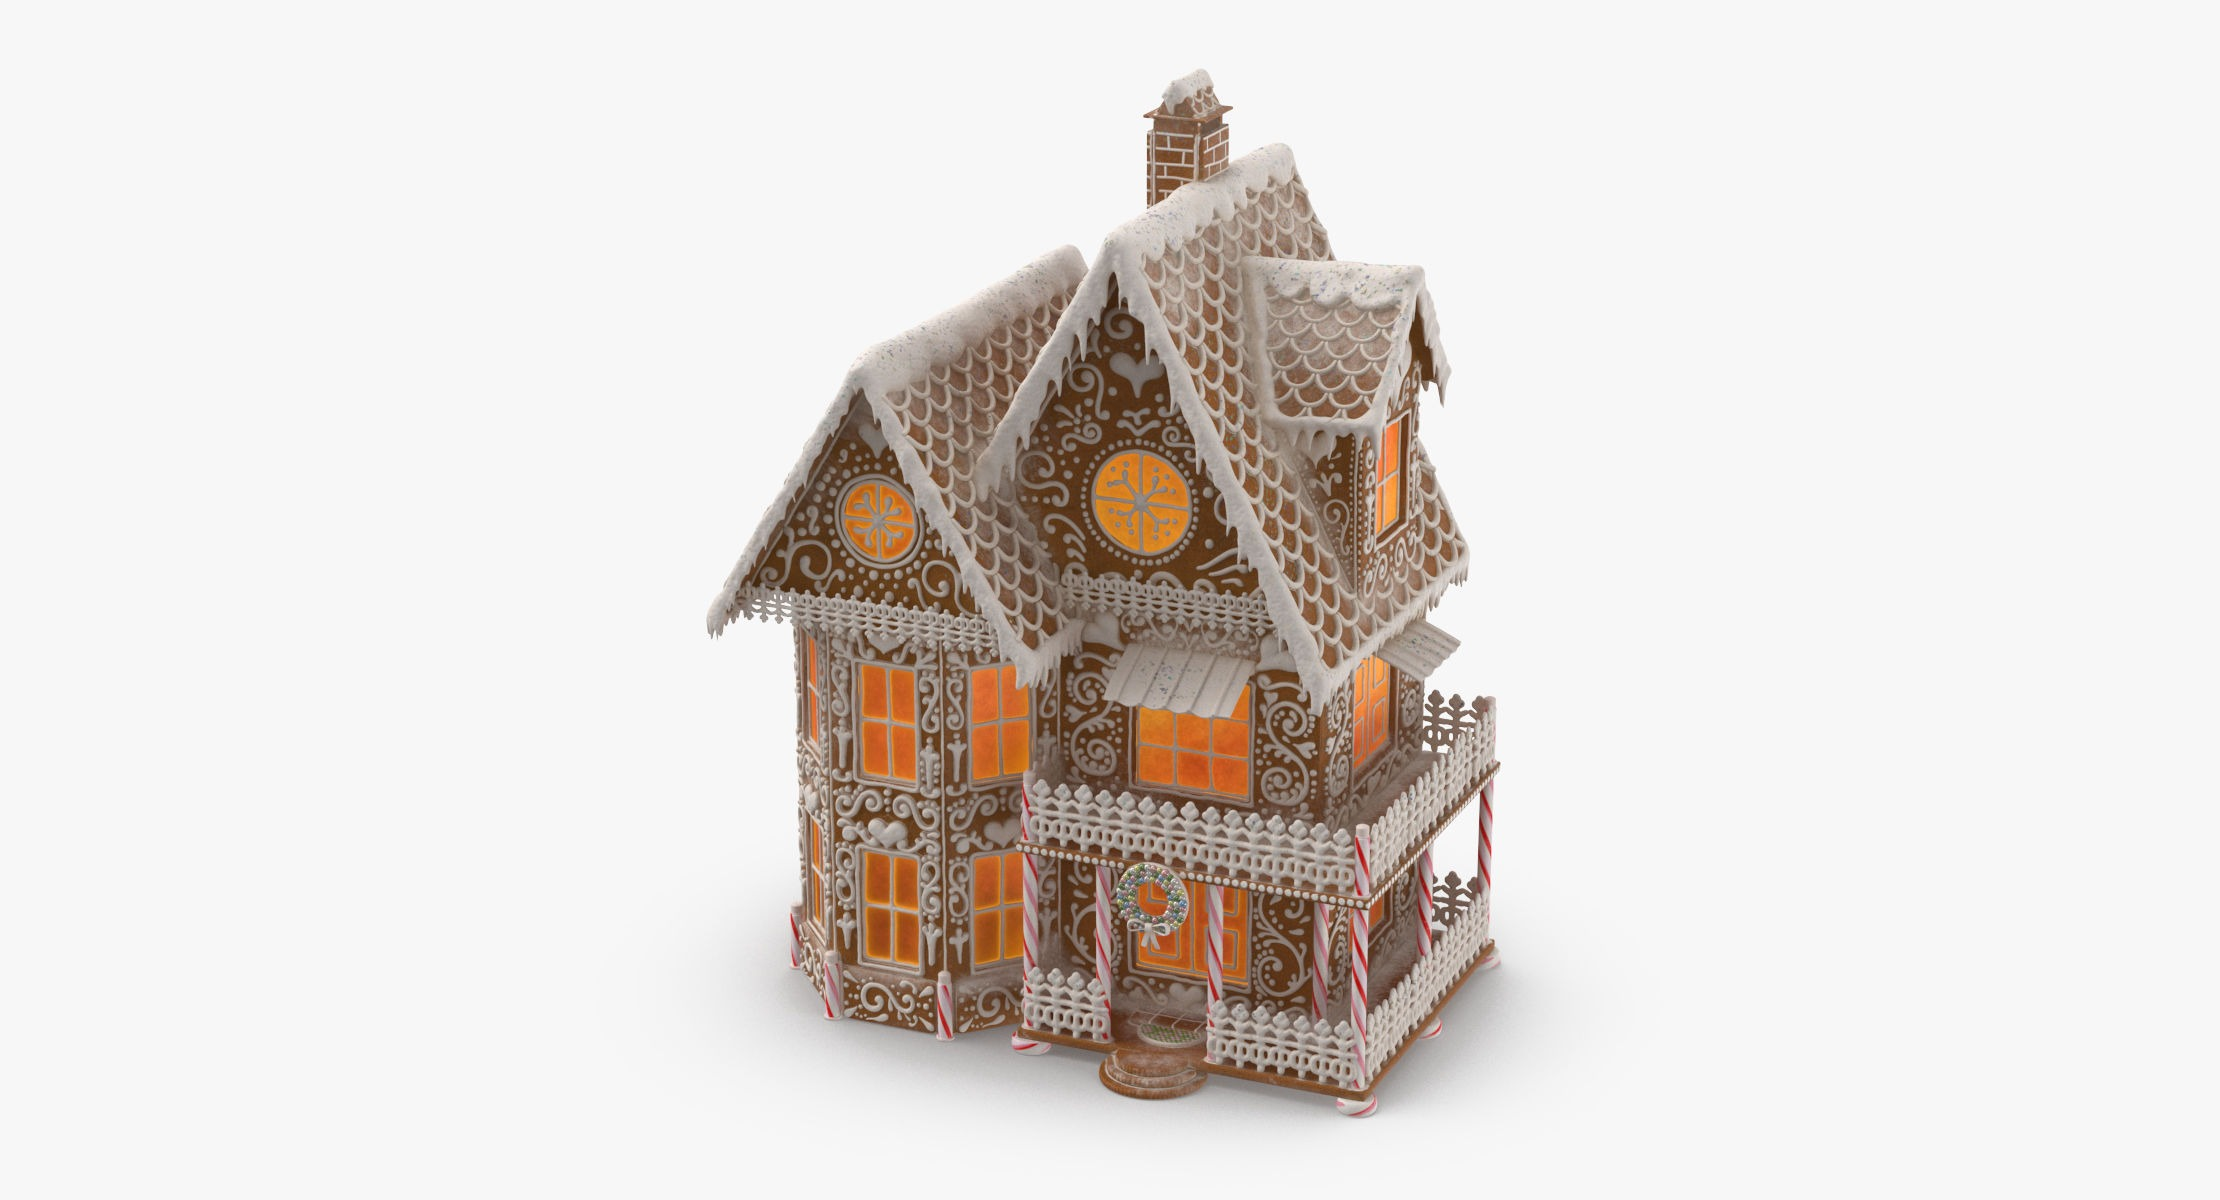 Gingerbread House 3D - reel 1